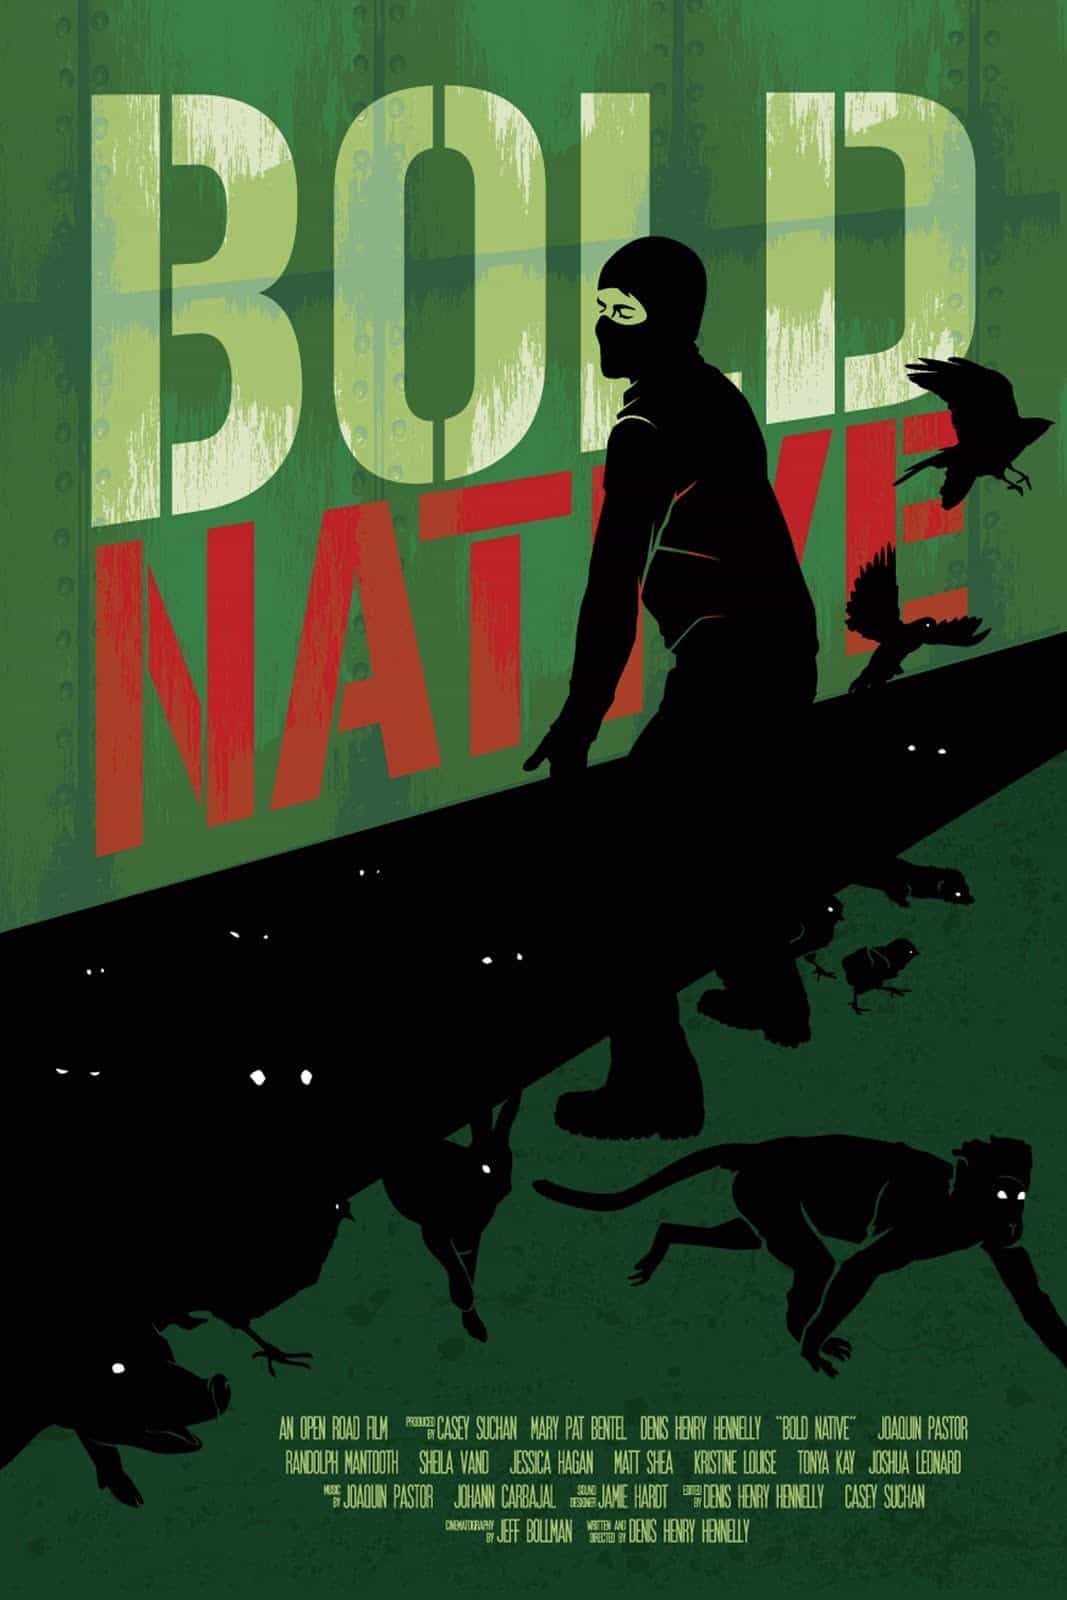 Bold Native, 2010